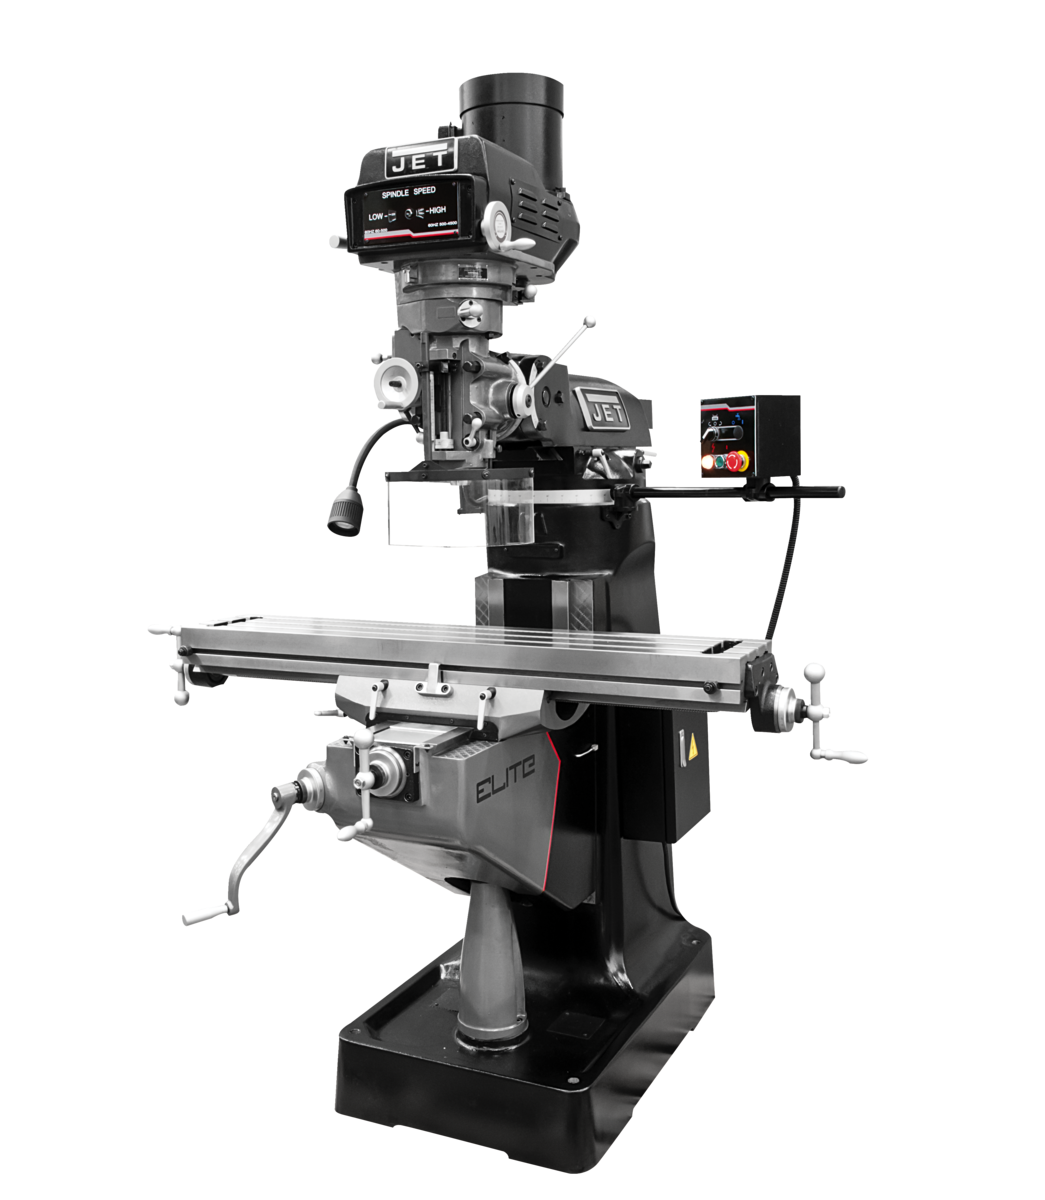 ETM-949 Mill with 3-Axis Newall DP700 (Quill) DRO and Servo X, Y, Z-Axis Powerfeeds and USA Air Powered Draw Bar